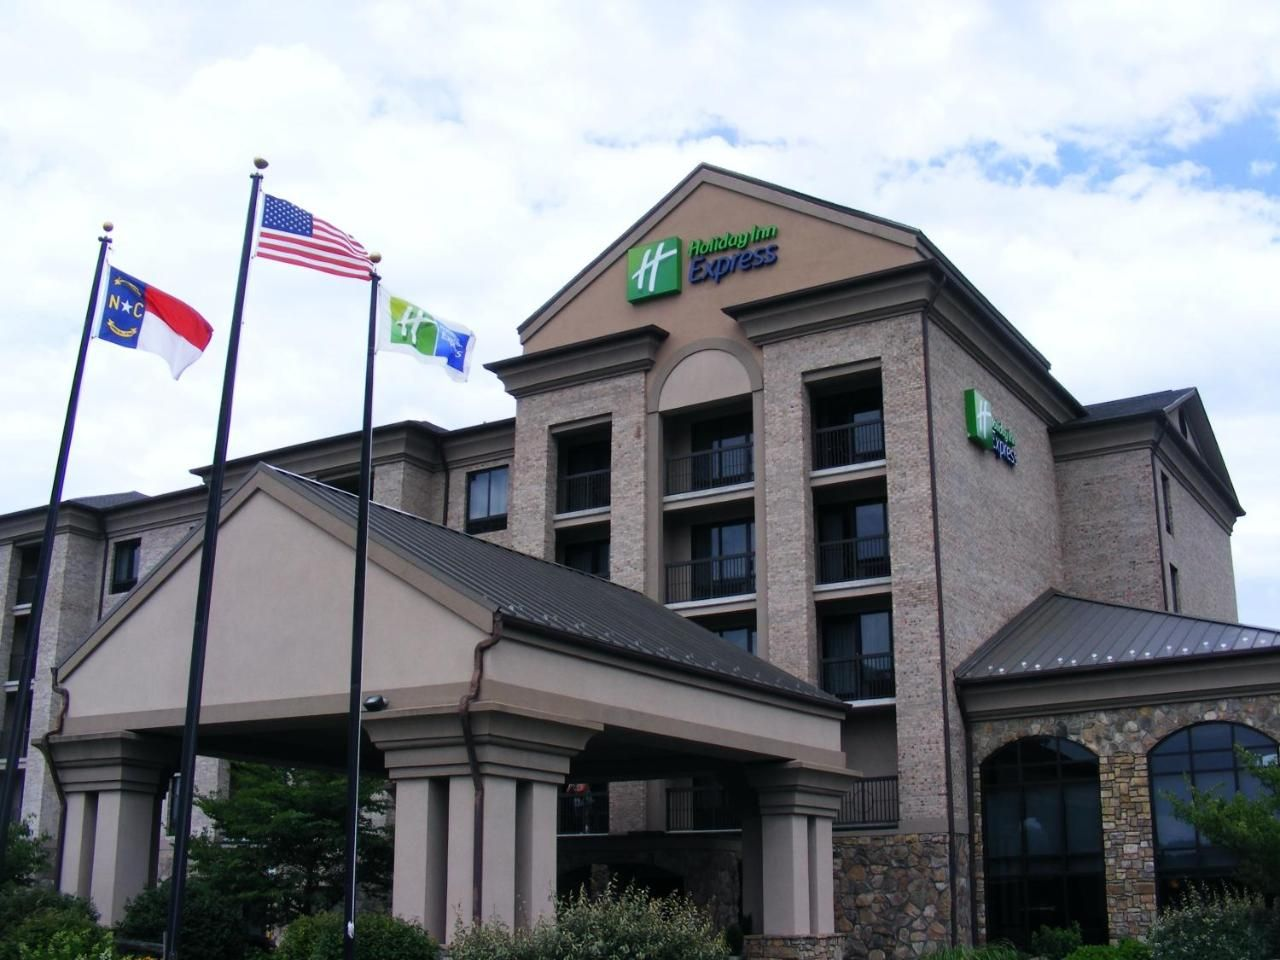 Holiday Inn Express Boone  Pricelinecom  Best hotels